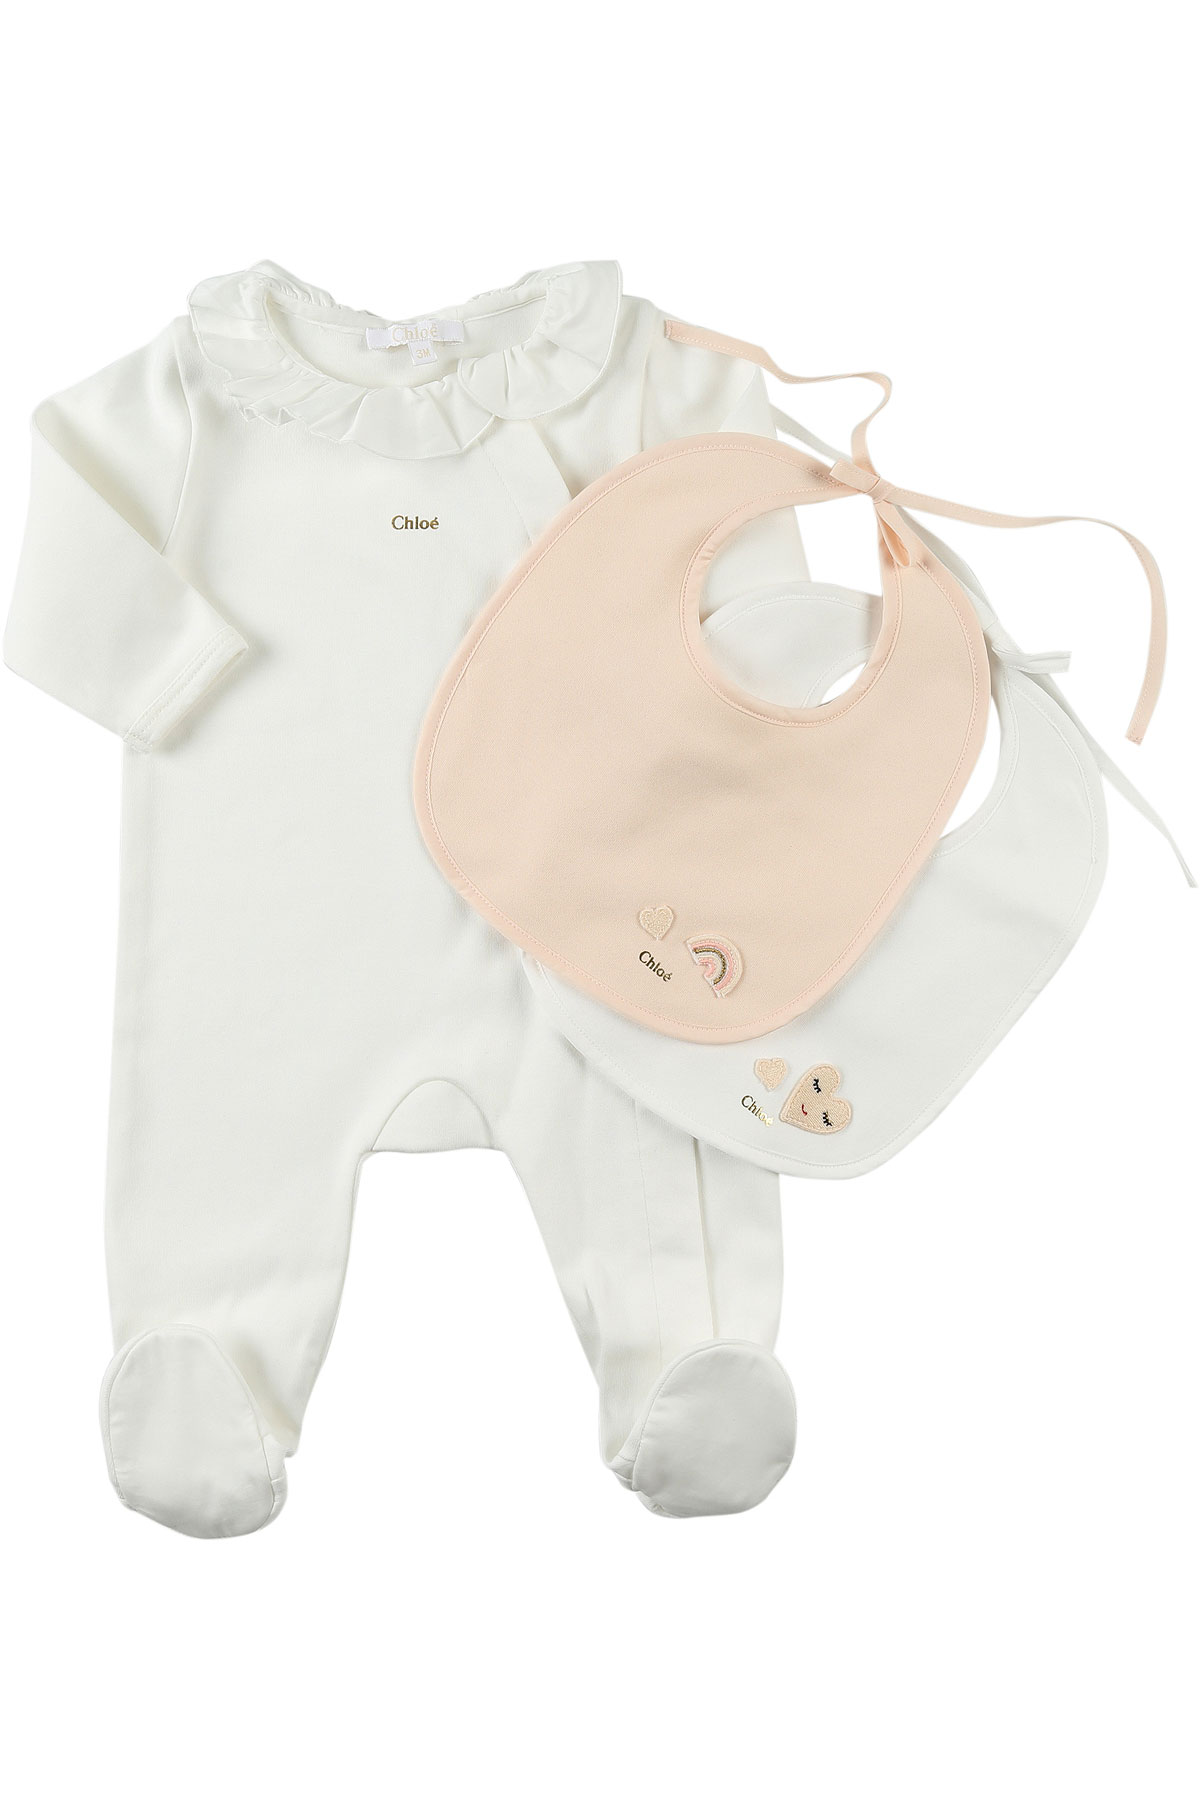 Image of Chloe Baby Sets for Girls, White, Cotton, 2017, 1M 3M